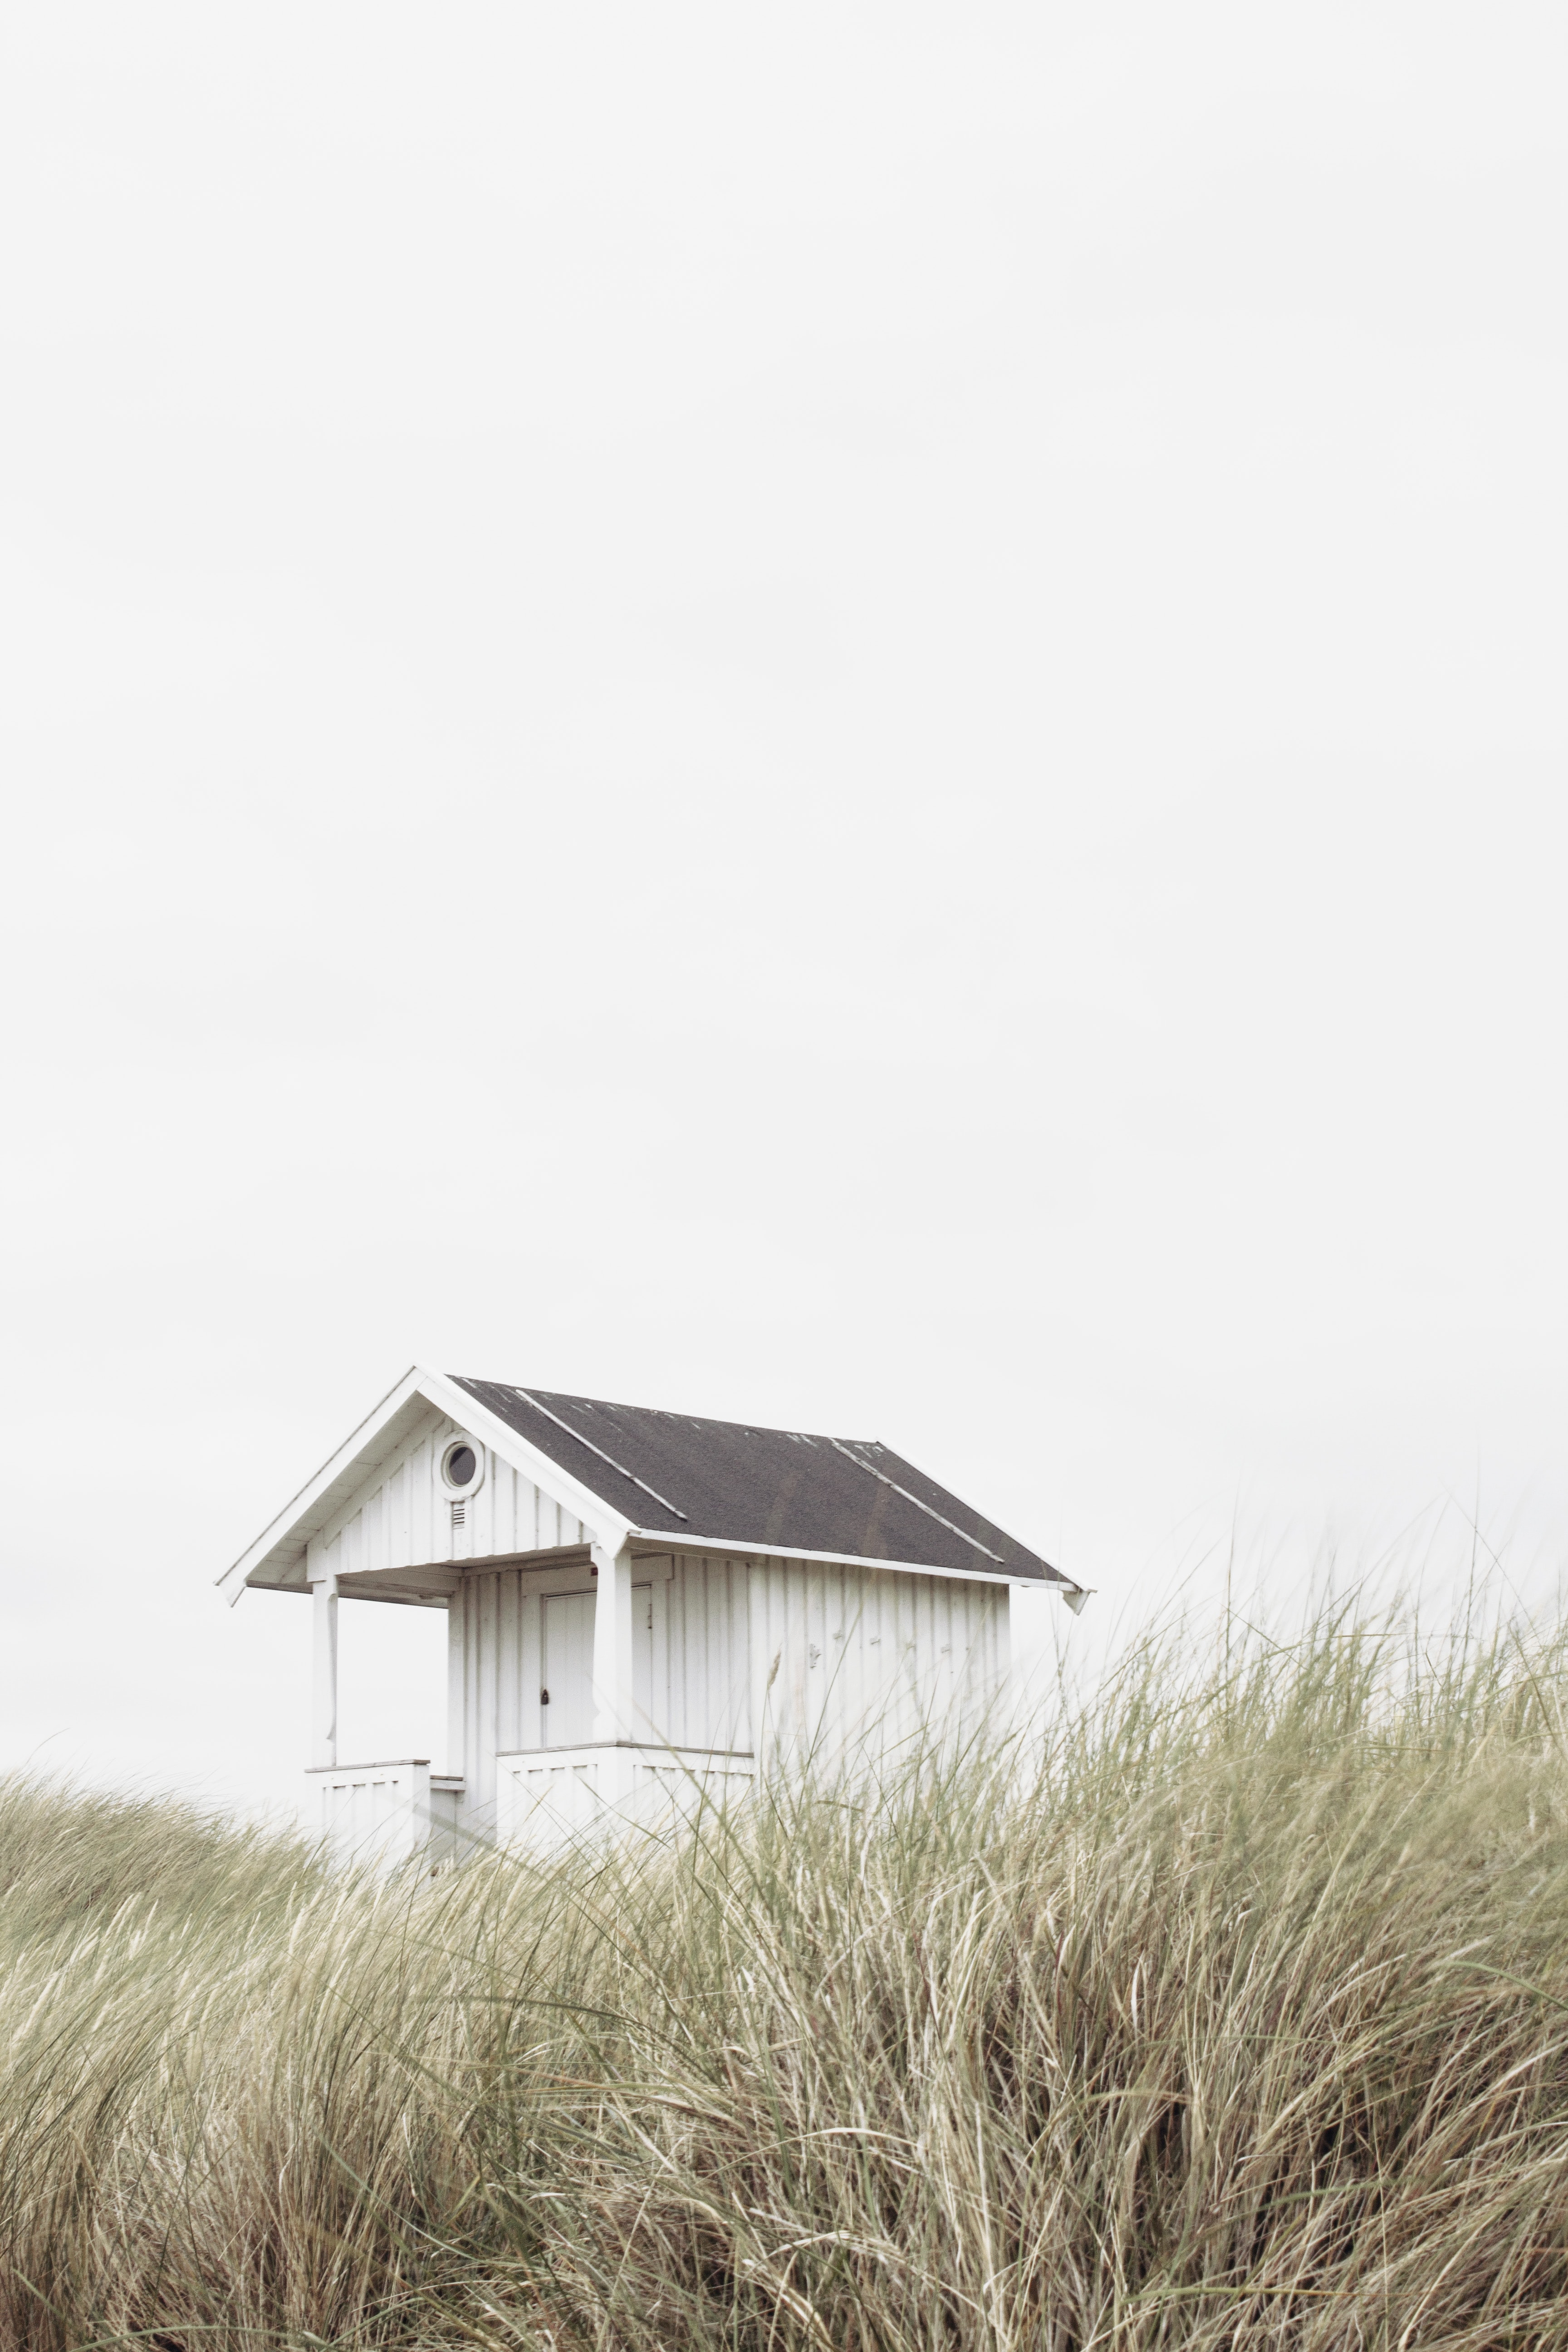 white and black wooden shed in the middle of brown grass under white sky